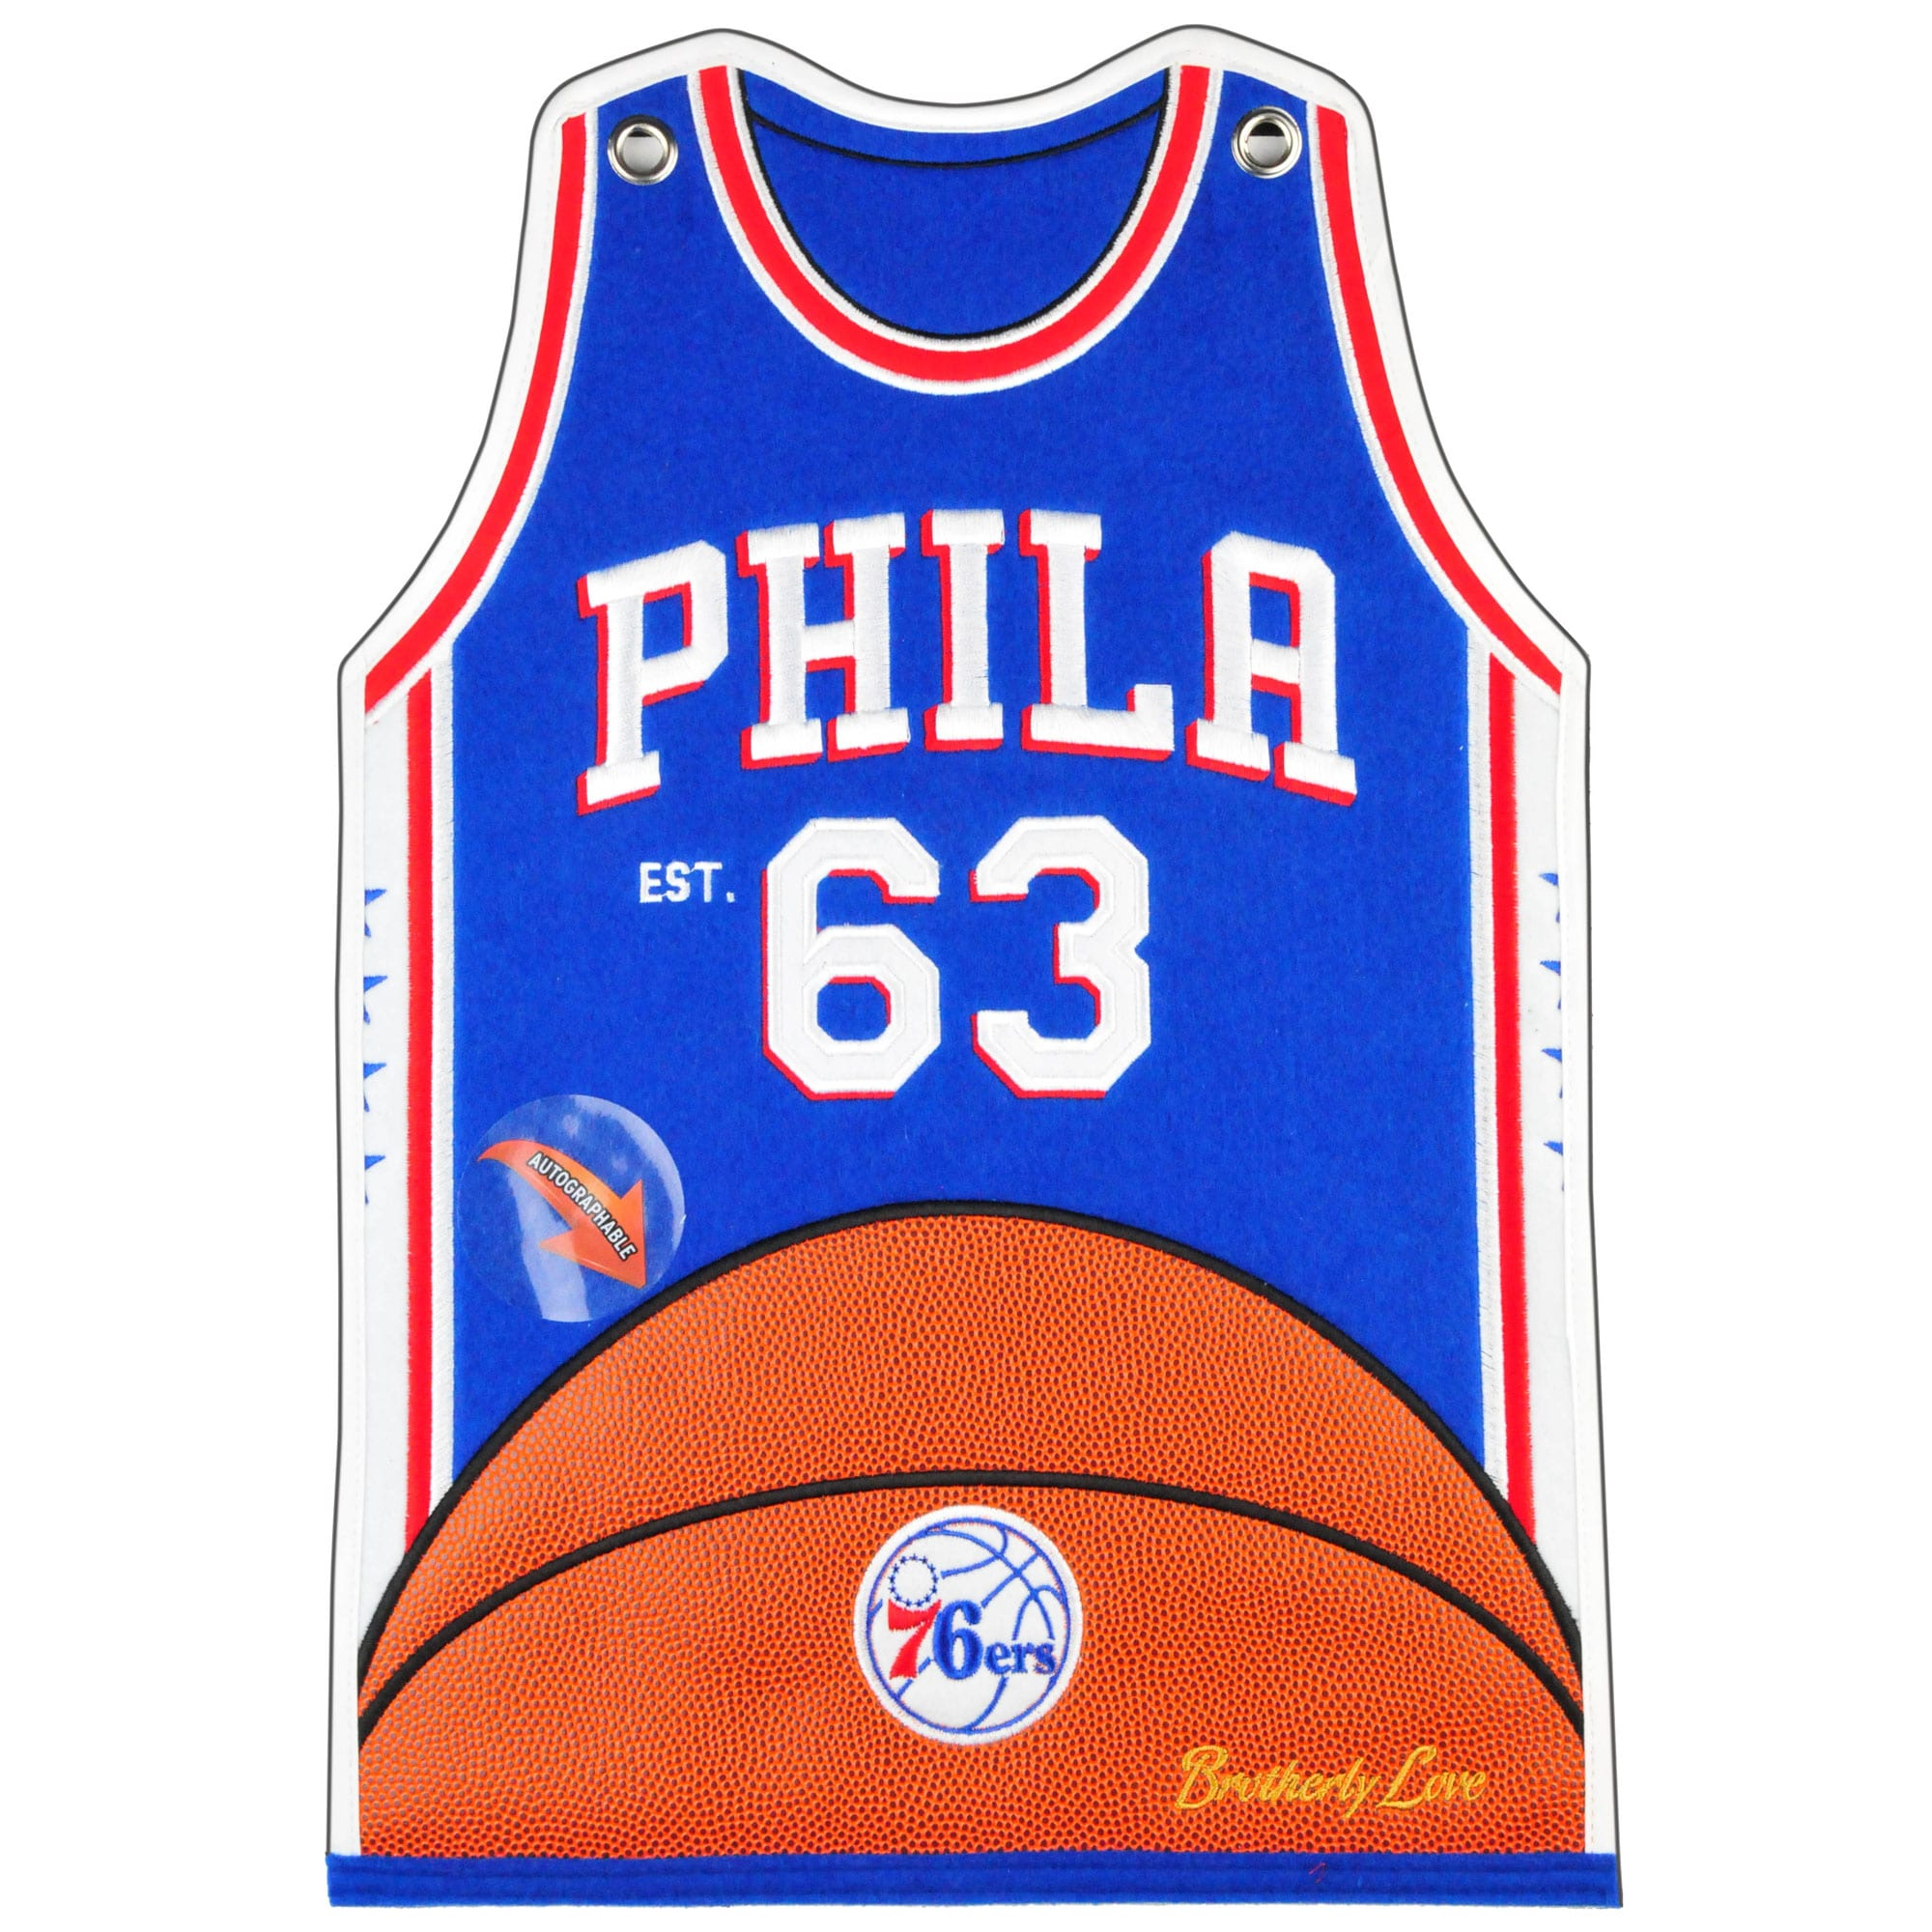 Philadelphia 76ers 20'' x 18'' Jersey Traditions Banner